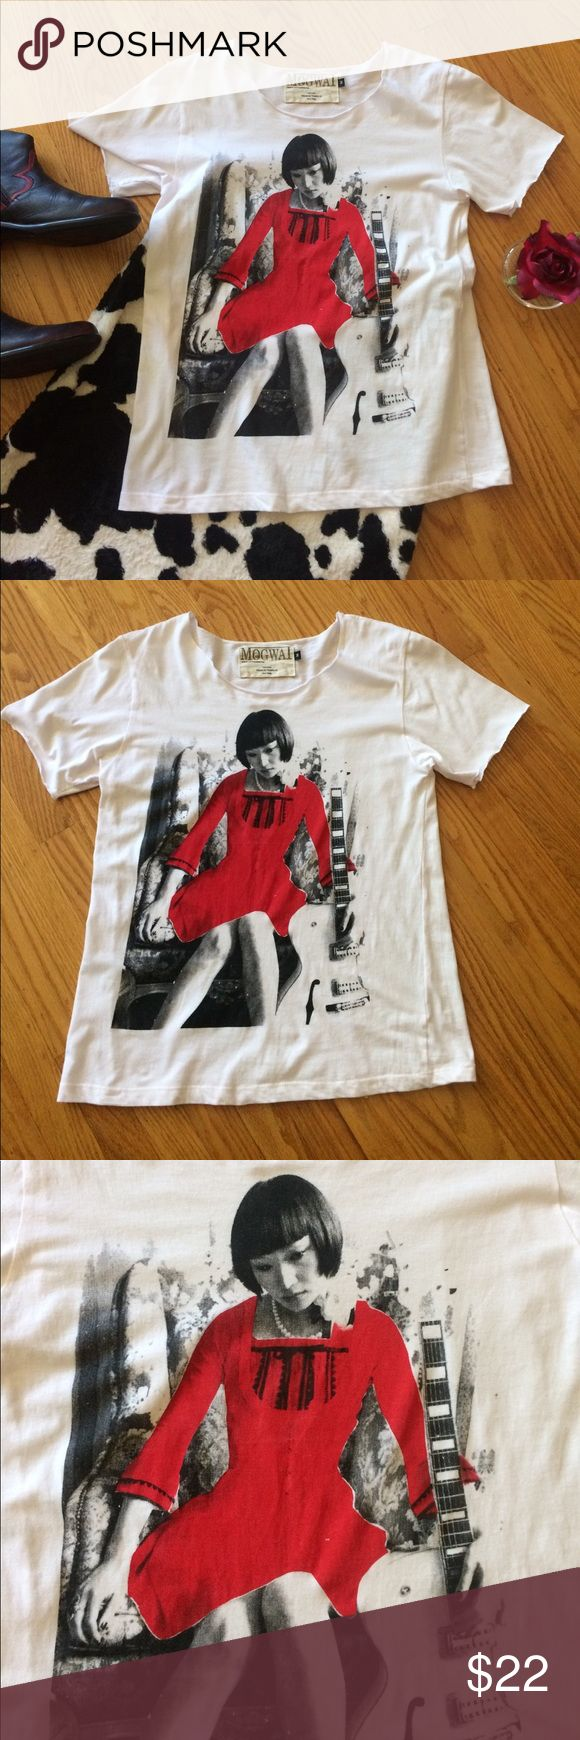 🍒 Mogwai Boutique Tee - Misses Size Med. - NICE! ❤️ This - Unique, Boutique Tee Made by Mogwai. In Misses Size Medium & In Great, Pre-Owned Condition! Imprinted Design of Woman Contemplating Something while holding onto her 🎸. 100% Cotton (Please see Photo for Measurements). White, Black & Red Colors. I like this tee paired with a Cow Print Vintage Skirt that I have (Sz. 6), & paired with Shortie or Black Cowboy Boots. This Tee Rocks! Thank you for shopping here. Bundle additional items to…